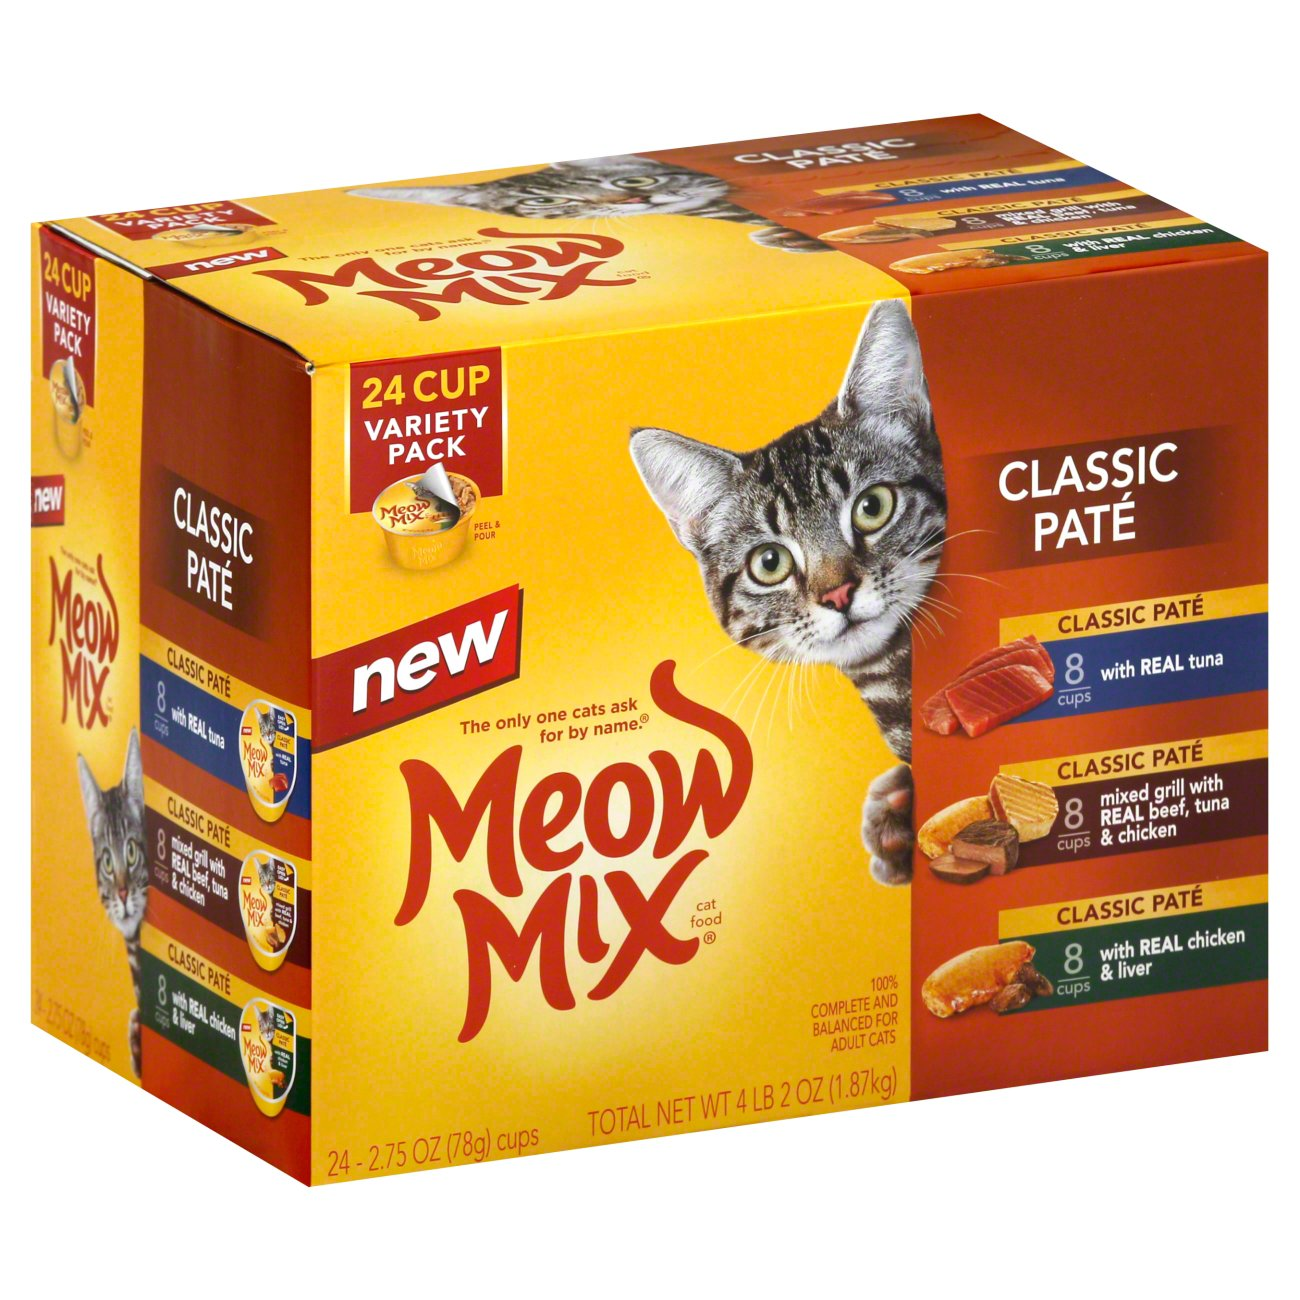 Meow Mix Classic Pate Cat Food Variety Pack - Shop Cats at H-E-B